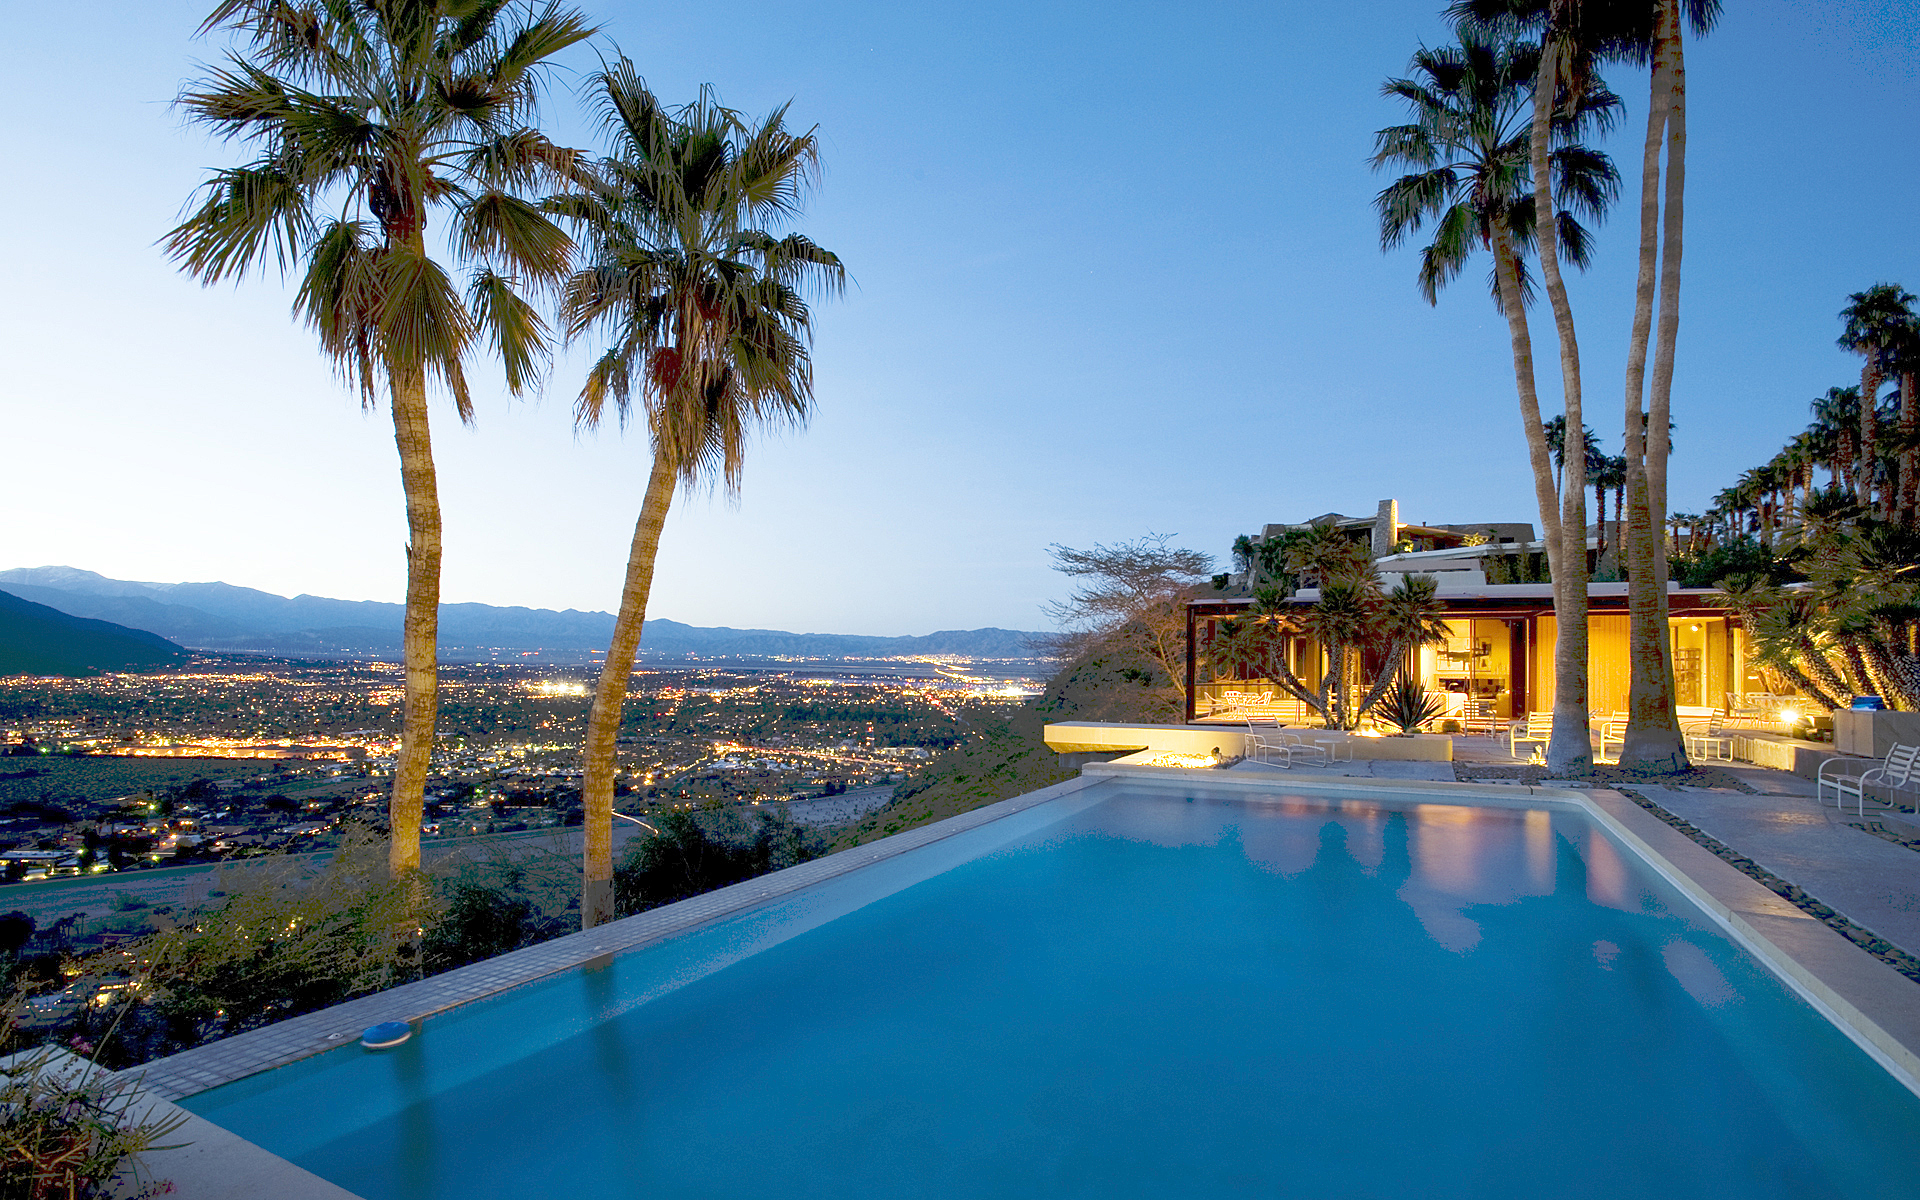 The historic Holden Estate offers an incredible view over Palm Springs. Built in 1977 for William Holden, the 8,000 sq.ft residence is surrounded by the very exclusive Bob Hope and Diamonds are FDorever- Elrod houses.